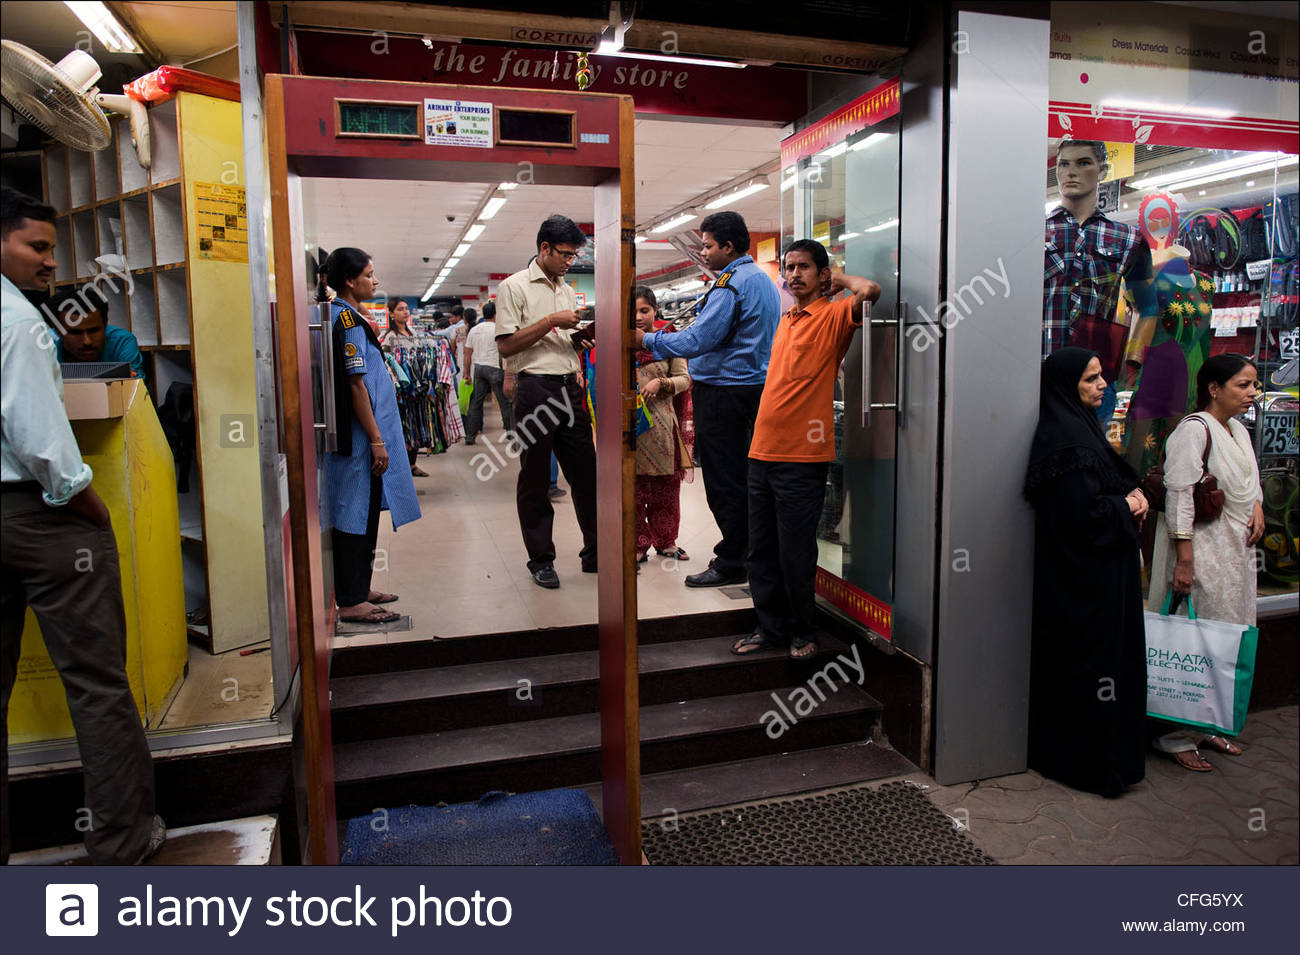 Fear of terrorism has lead authorities to install metal detectors in some department stores in New Market. - Stock Image